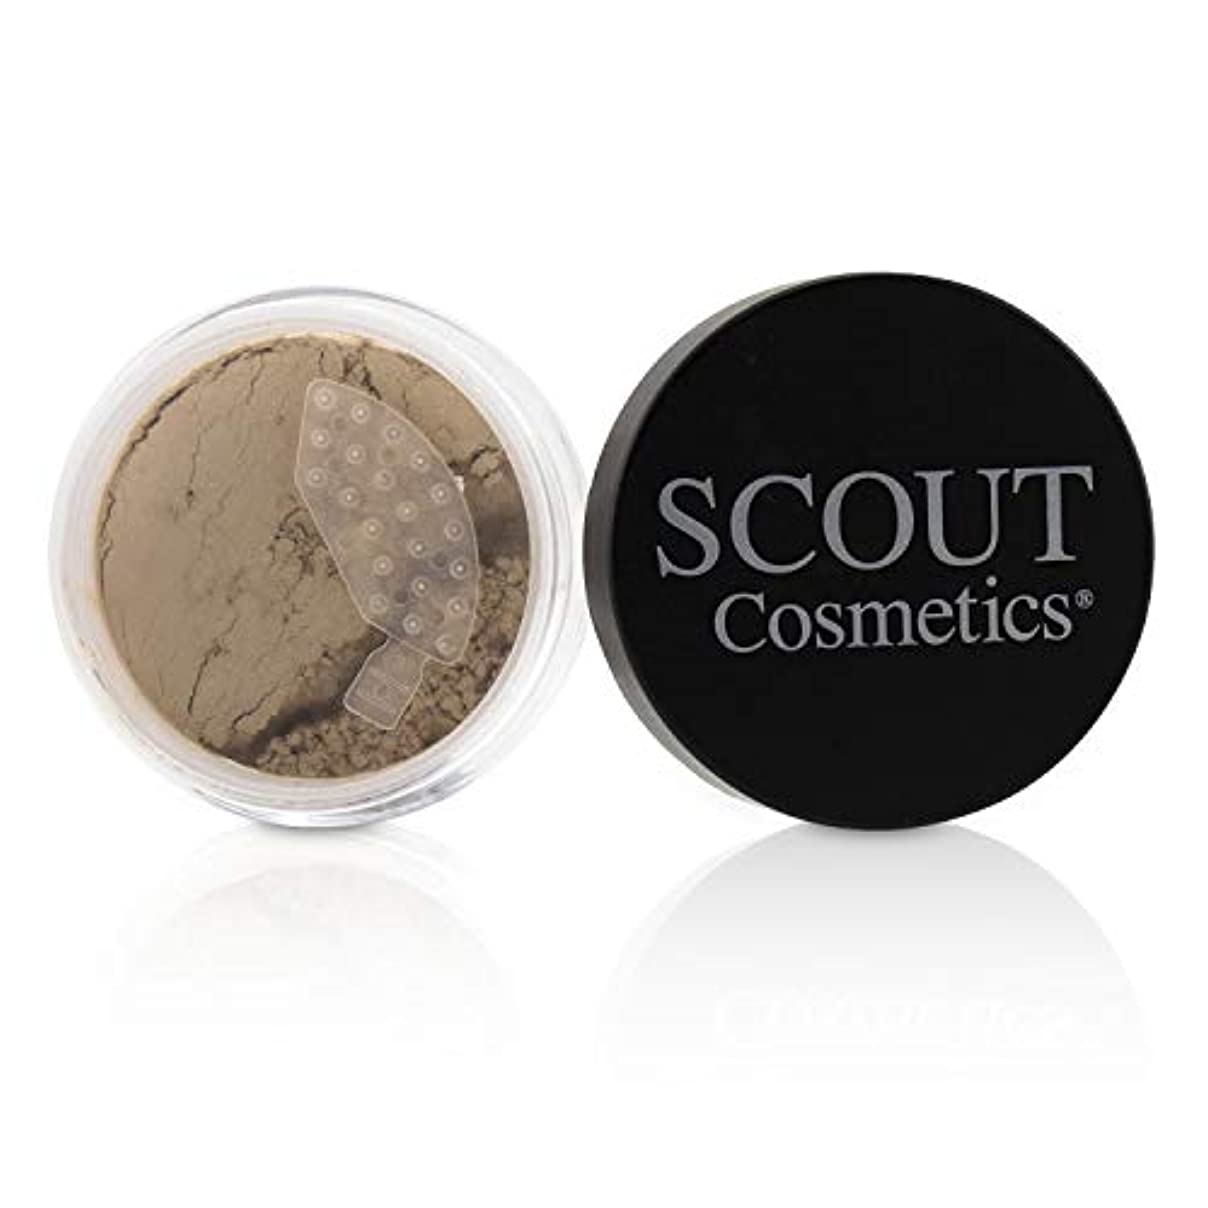 特権オーストラリア人男らしさSCOUT Cosmetics Mineral Powder Foundation SPF 20 - # Porcelain 8g/0.28oz並行輸入品